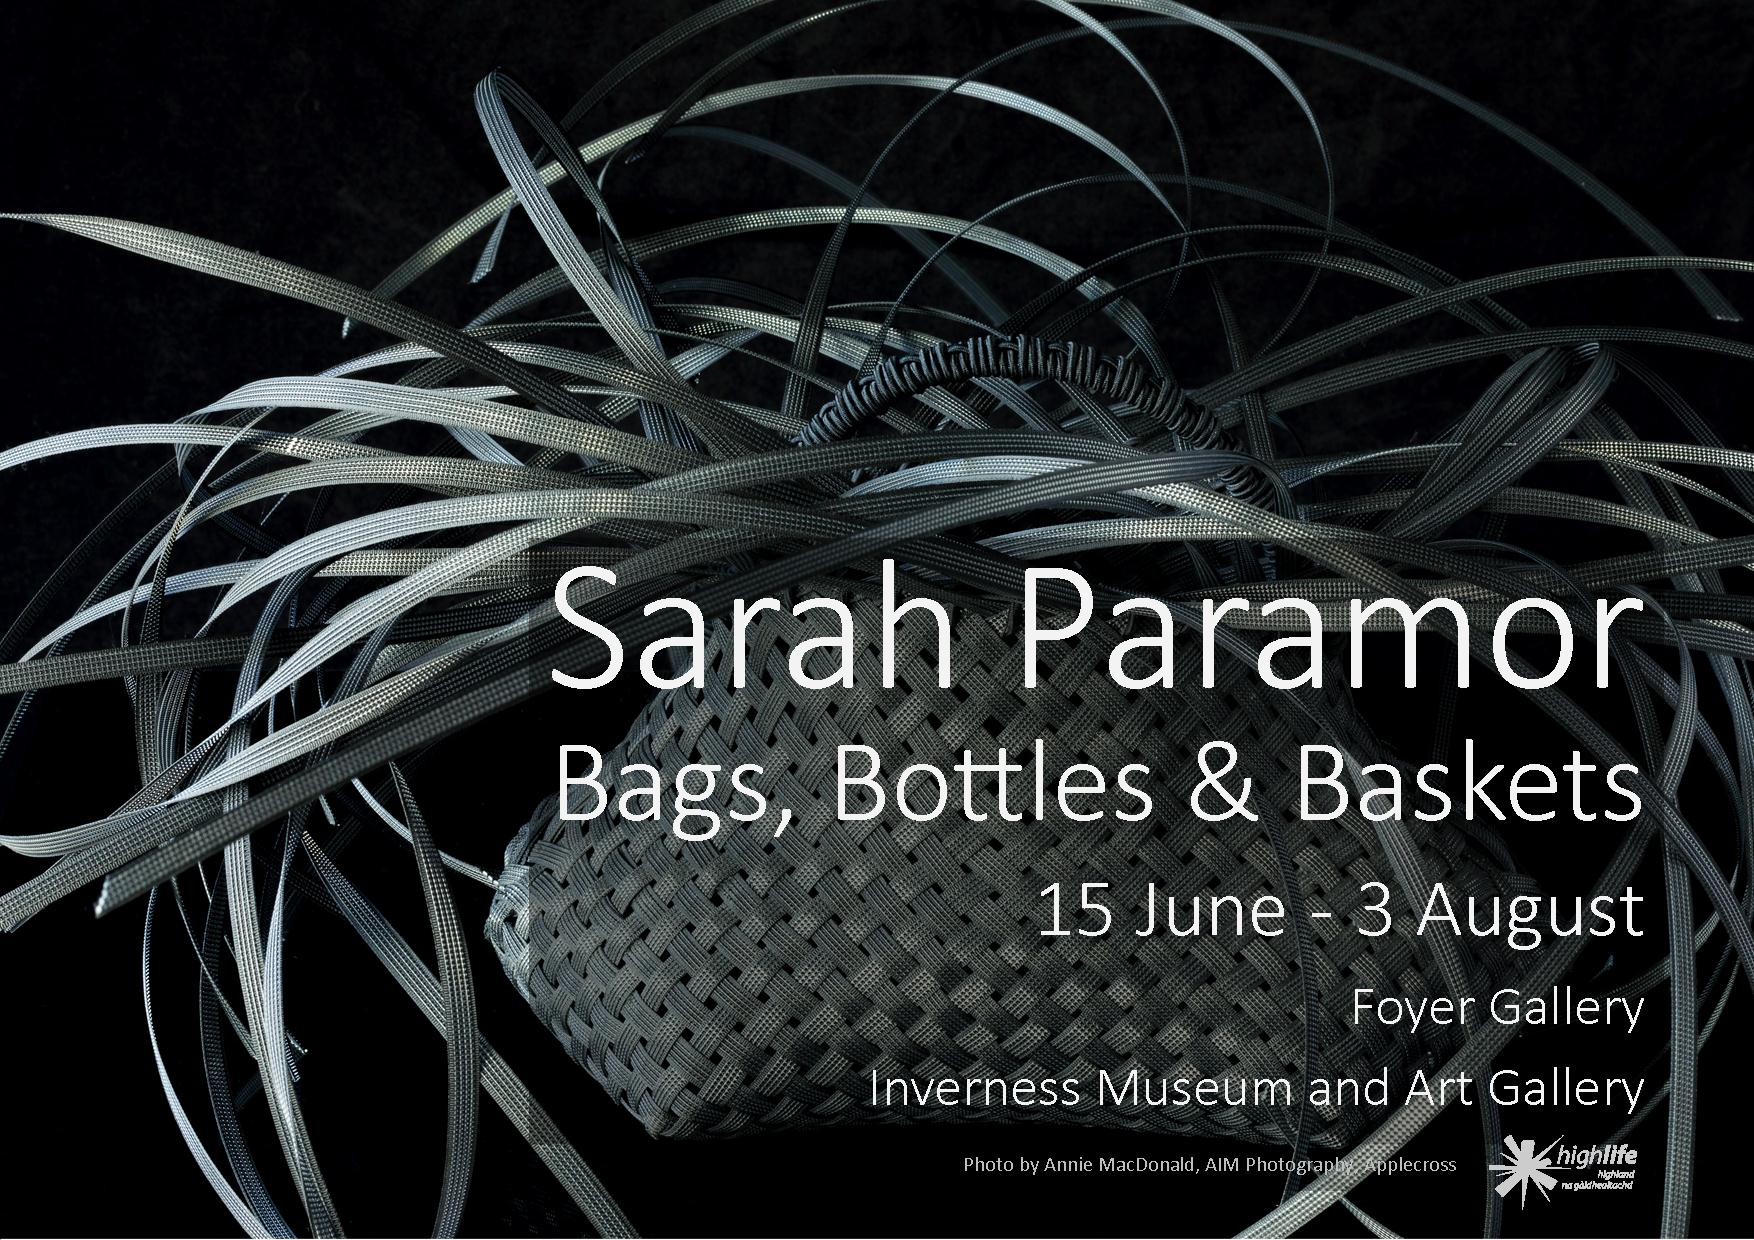 Sarah Paramor: Bags, Bottles & Baskets